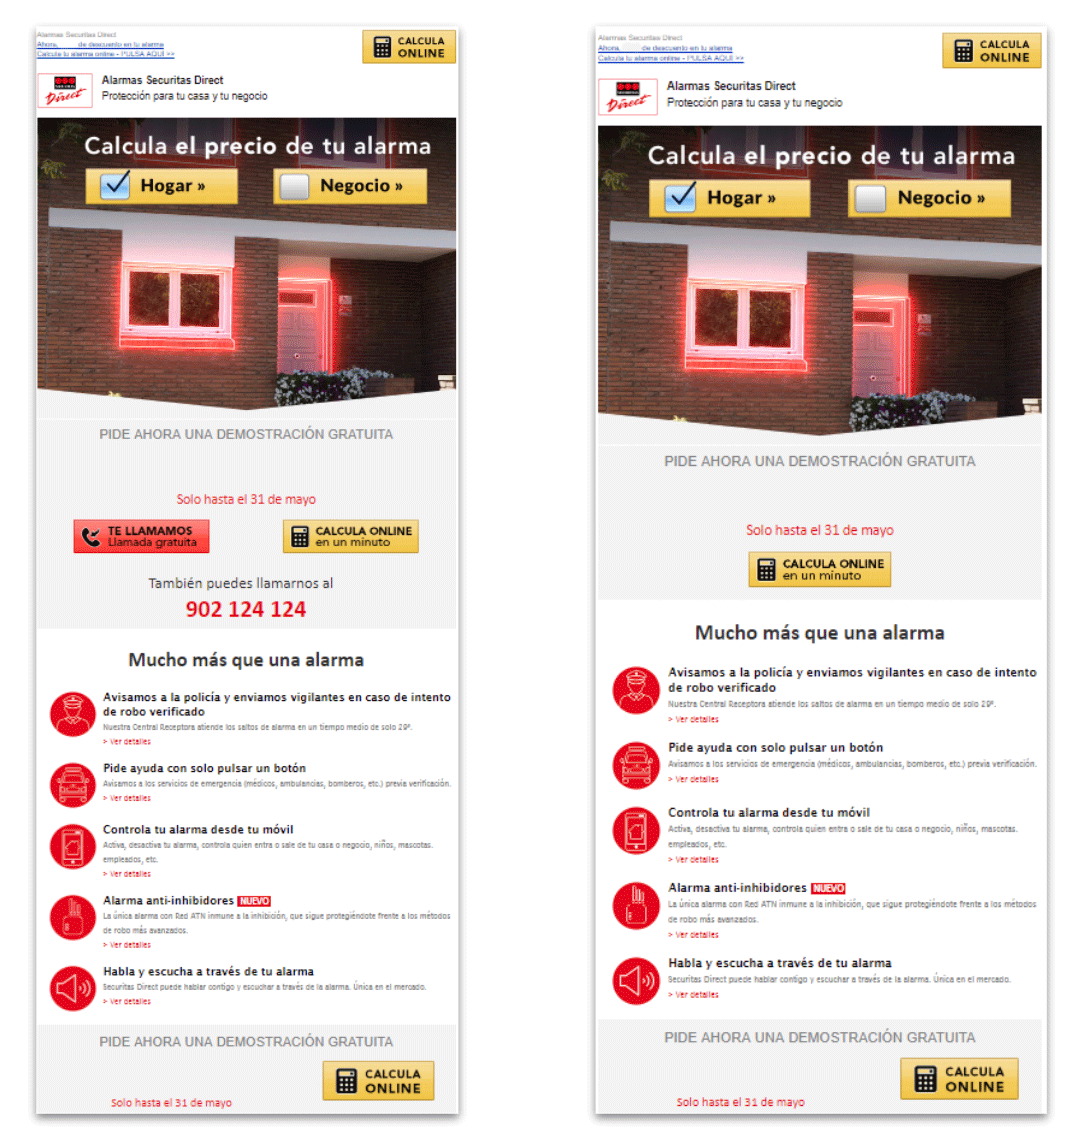 Email-Marketing-Securitas-Direct-1